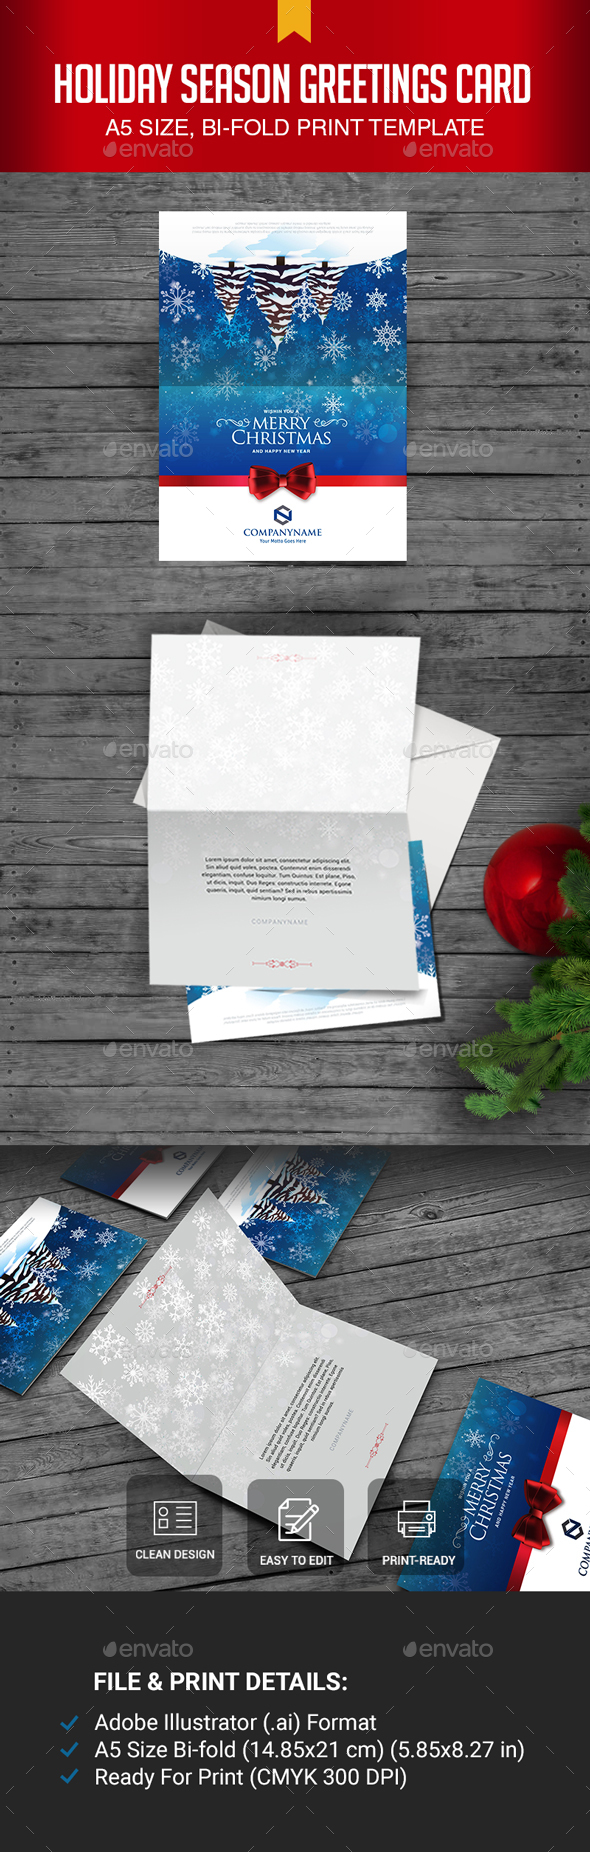 GraphicRiver Holiday Season Greetings Card 21075996